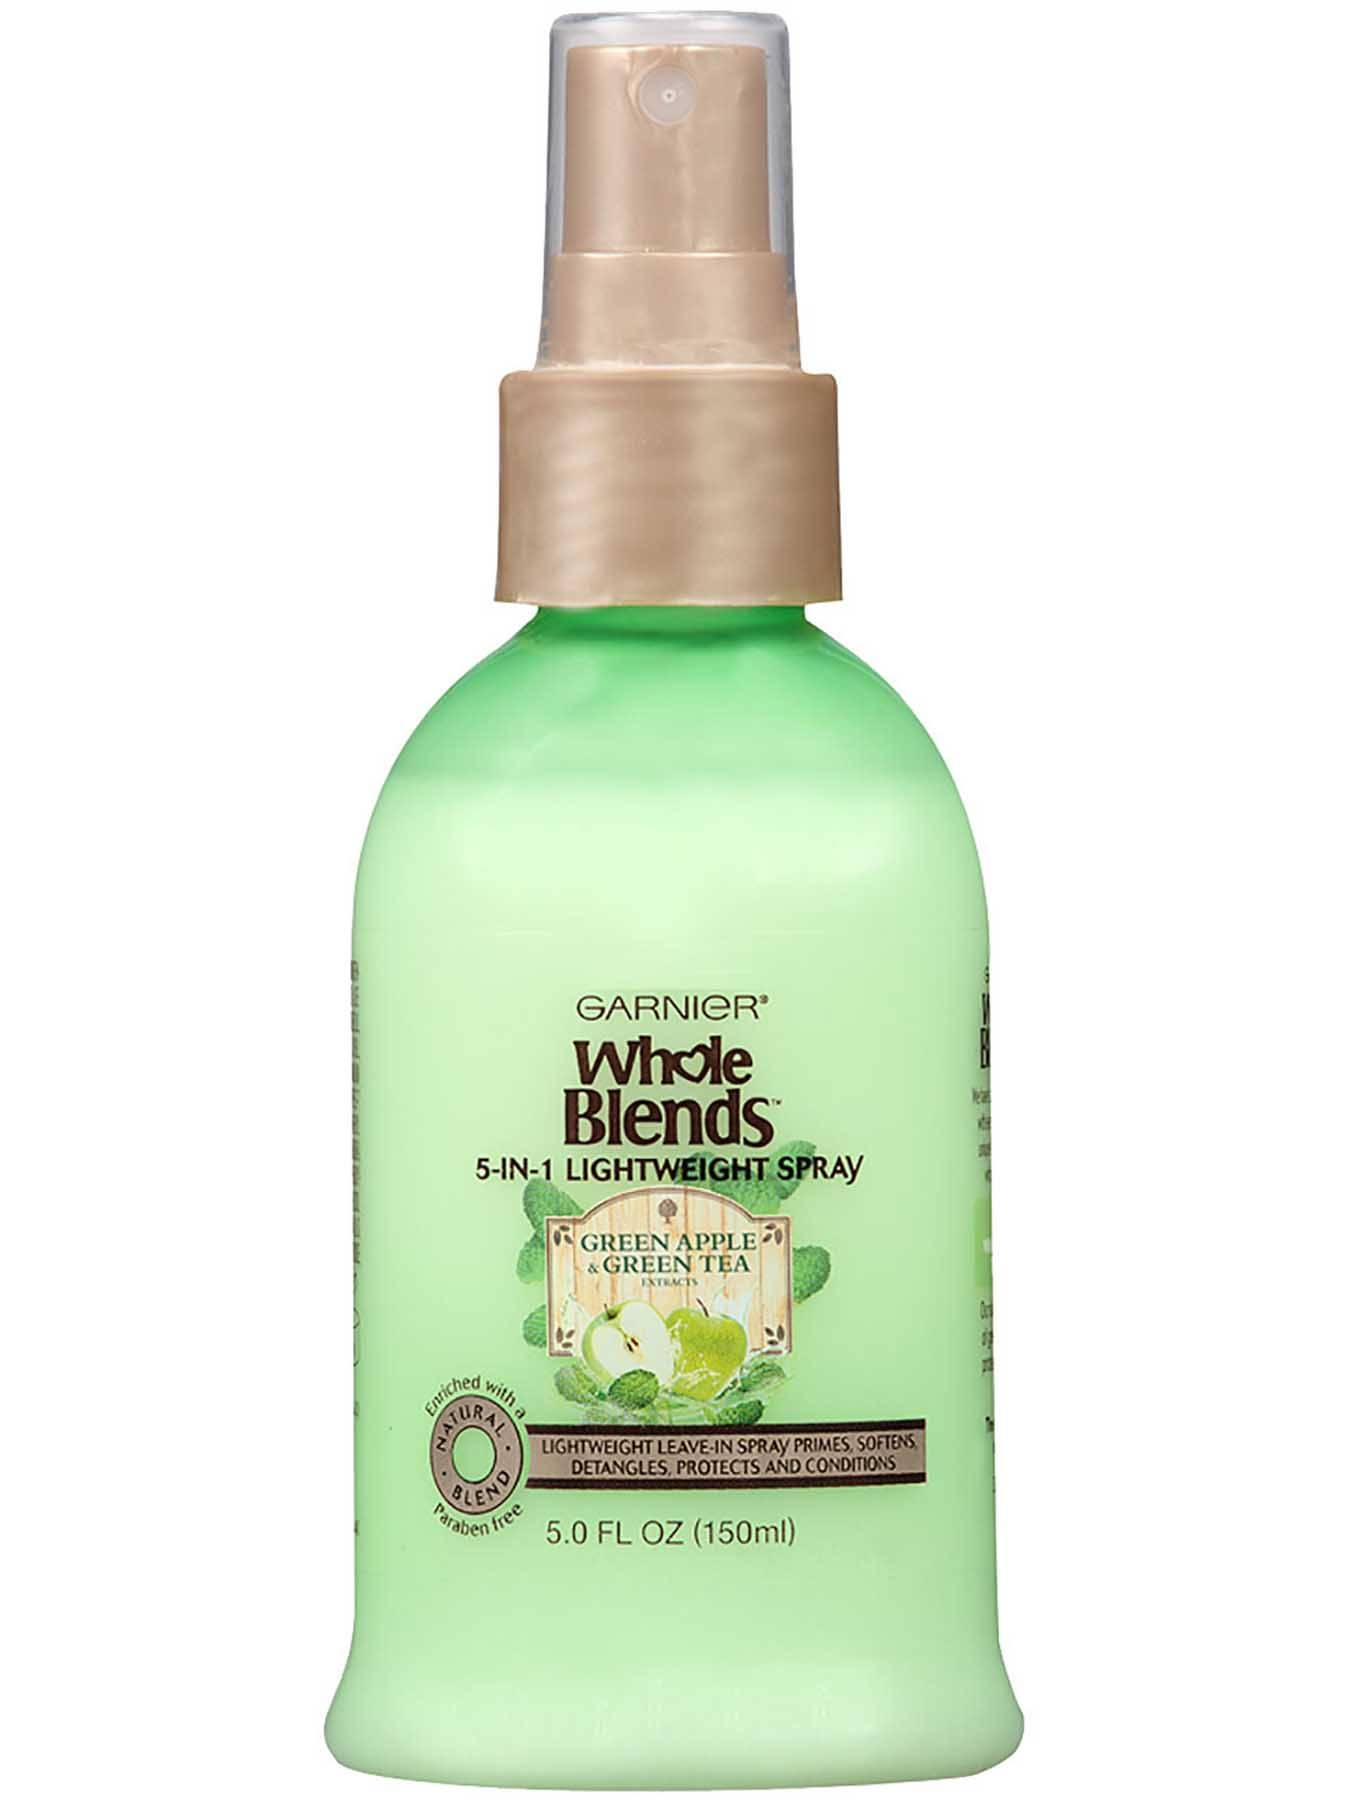 Garnier Whole Blends Refreshing 5-in-1 Lightweight Spray Green Apple Green Tea Extracts Front Of Bottle